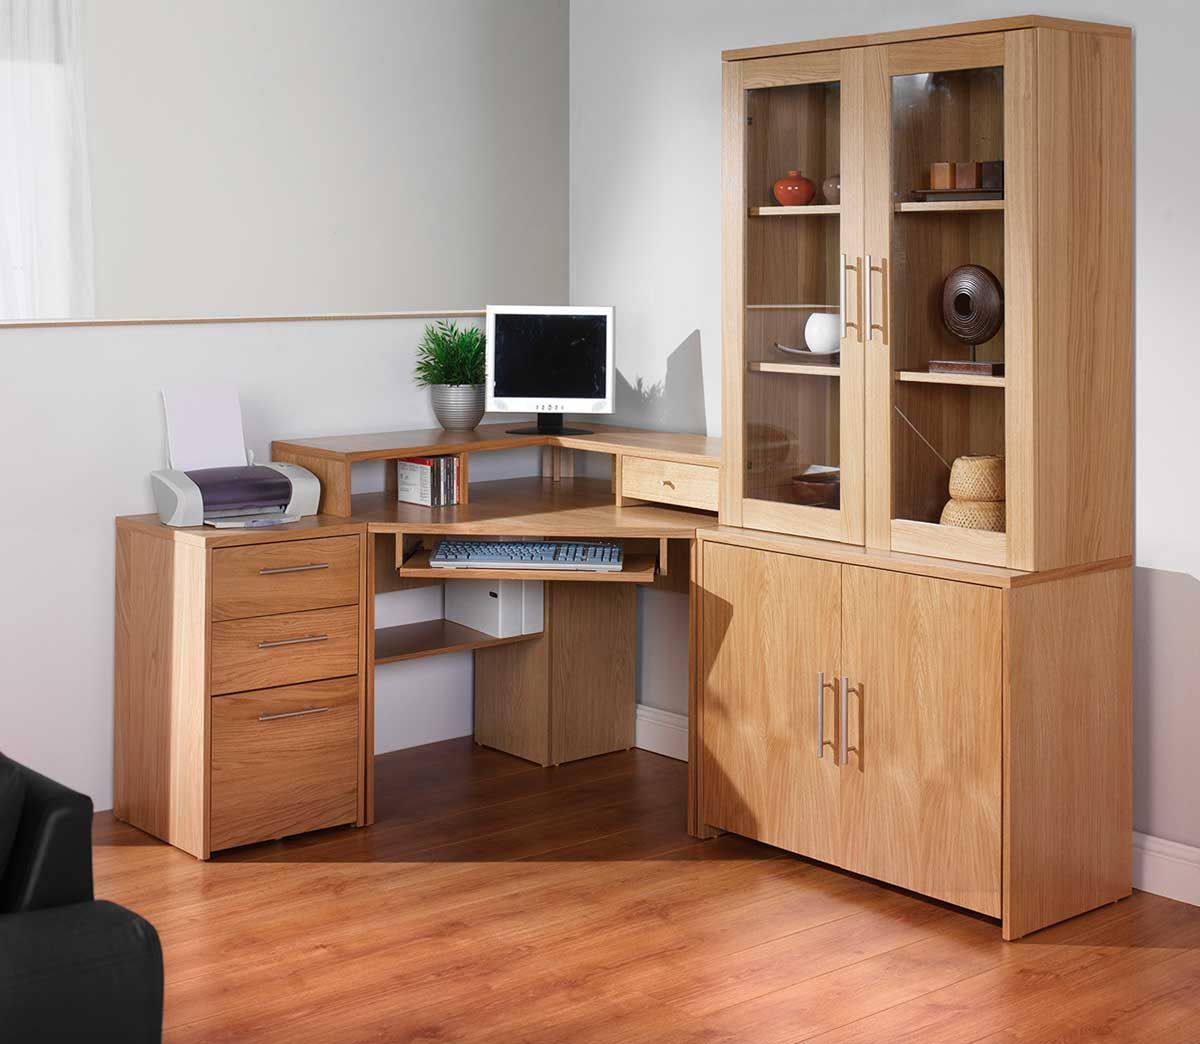 corner solid wood computer desk ikea Modern home office